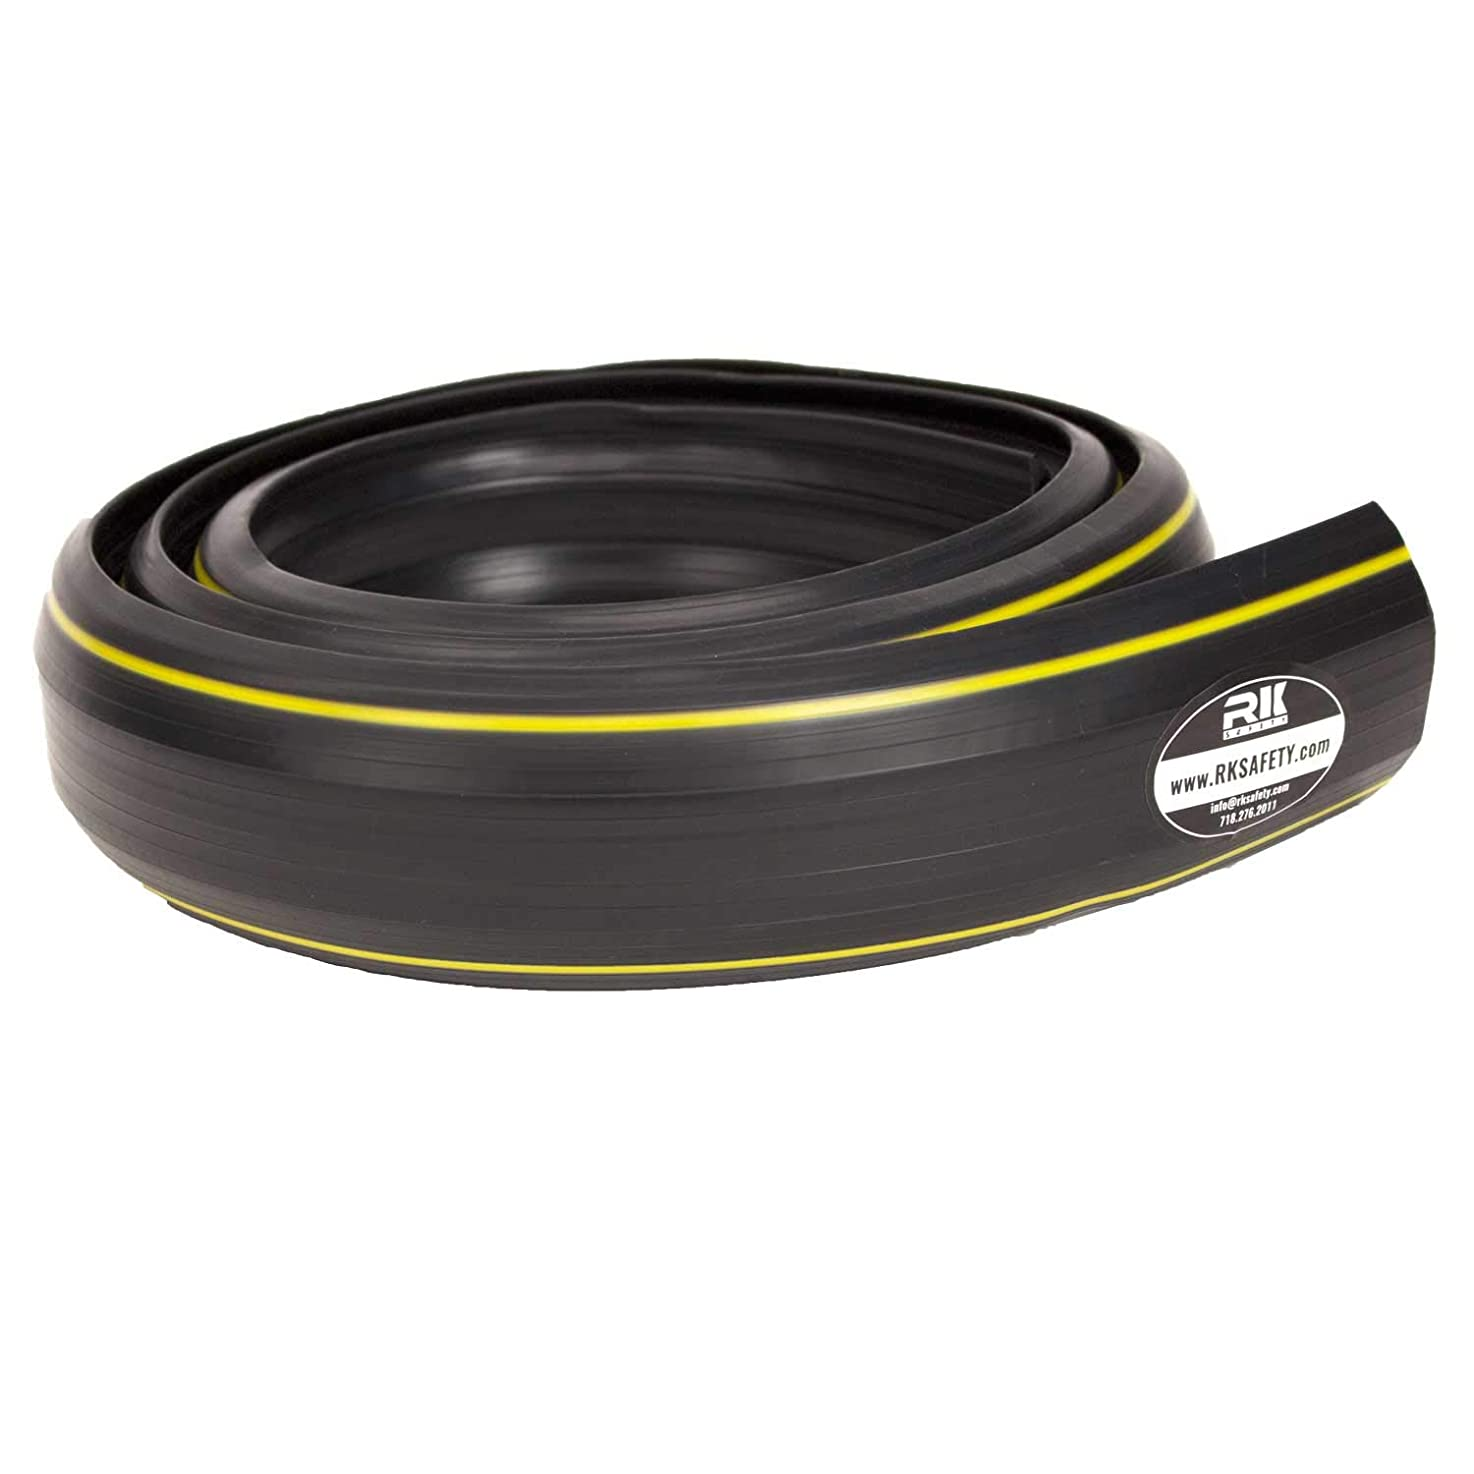 RK Safety 6.5 Feet in Length Heavy Duty PVC Floor 3 Cord Protector -Durable Black PVC Cover- Great for The Home, Office, Warehouse or Concerts - Easy to Unroll and Open (Black)